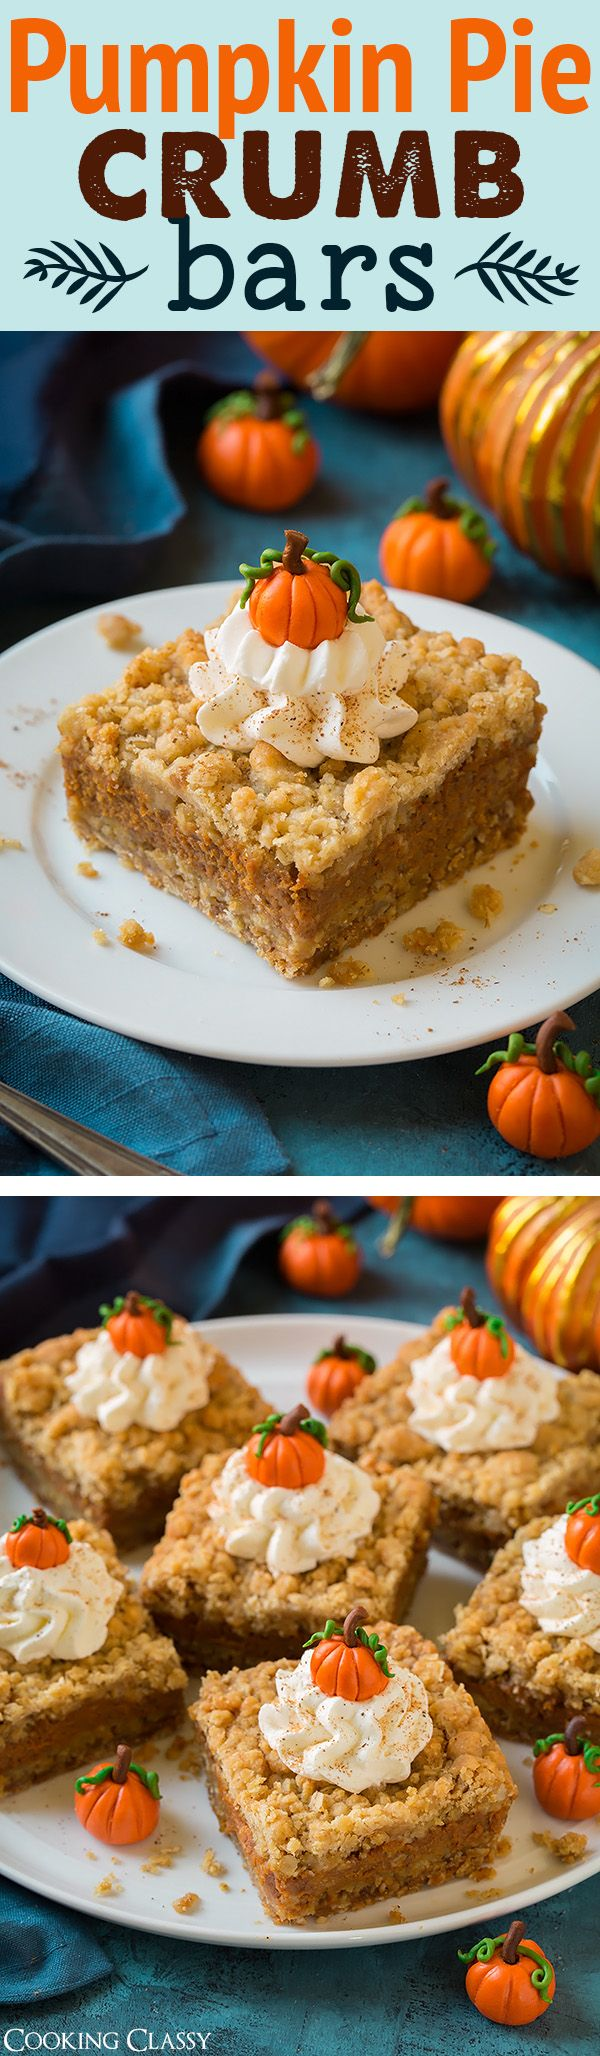 Pumpkin Pie Crumb Bars - one of my FAVORITE fall recipes! Cookie + pie. So good!